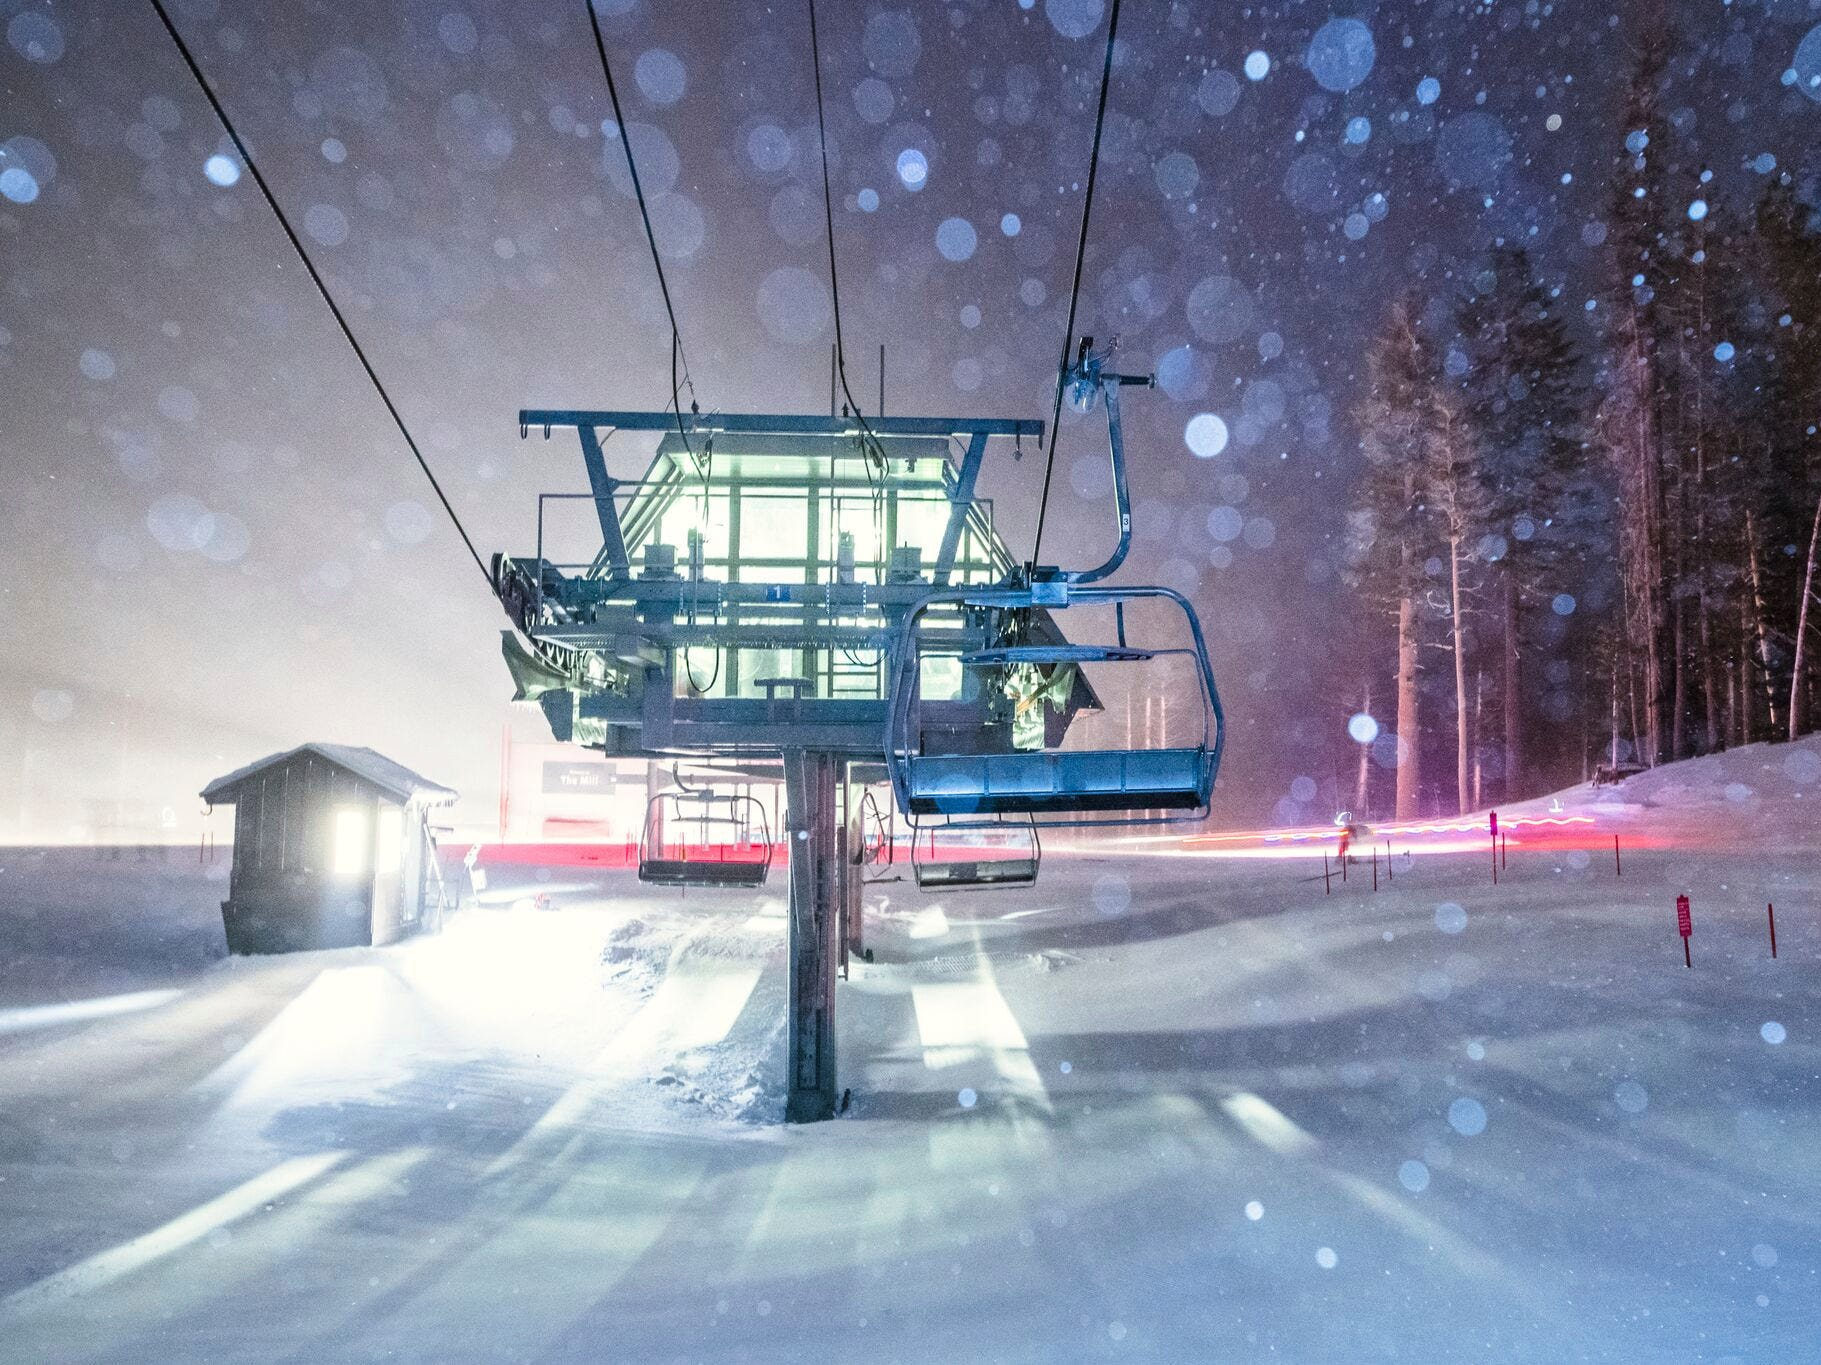 This photo provided by Mammoth Mountain Ski Area shows fresh snow fall over one of the chair lifts at Mammoth Mountain Ski Area in Mammoth Lakes, Calif., Wednesday, Jan. 16, 2019. A Pacific storm that brought fears of dangerous mudslides and a rare blizzard warning in the Sierra Nevada was less fierce than expected but hundreds of homes in fire-scarred California areas remained under evacuation orders as more rain was expected.